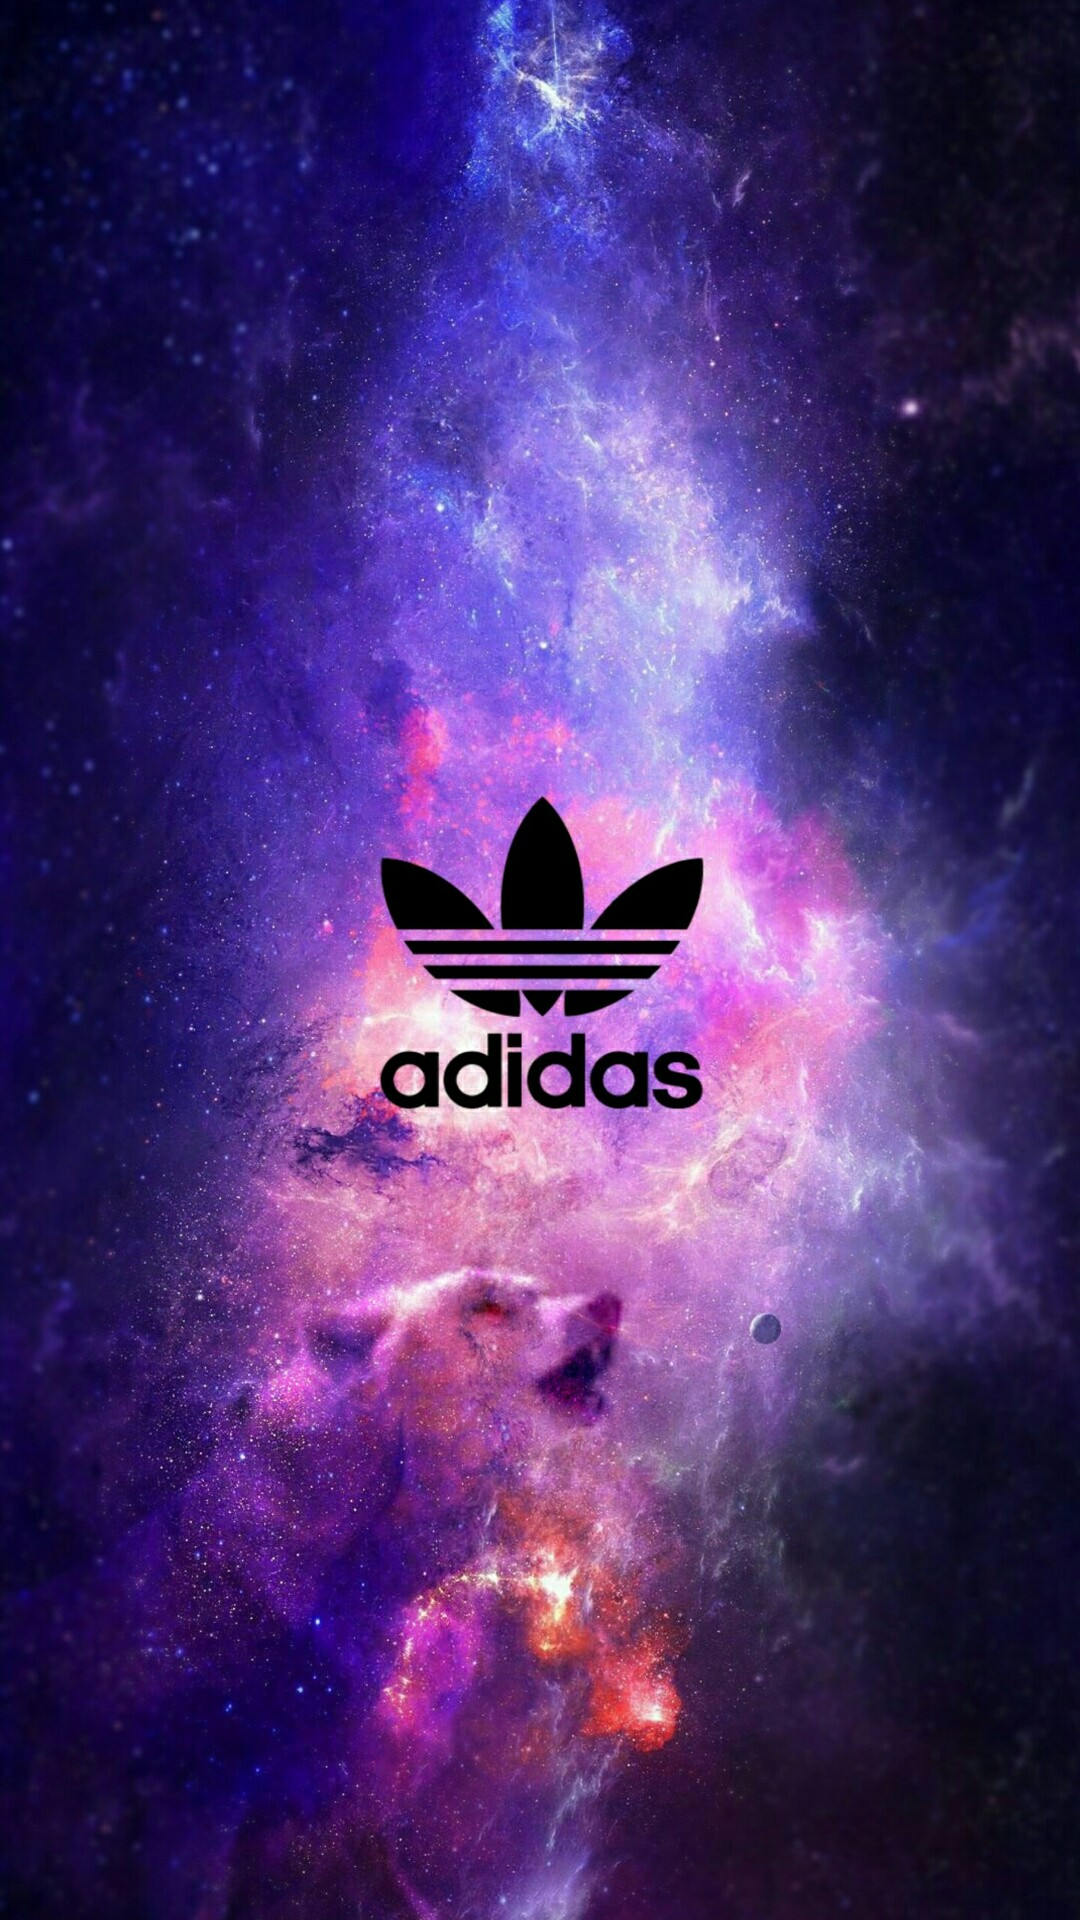 Colorful adidas wallpaper desktop background cool hd for Fond ecran supreme